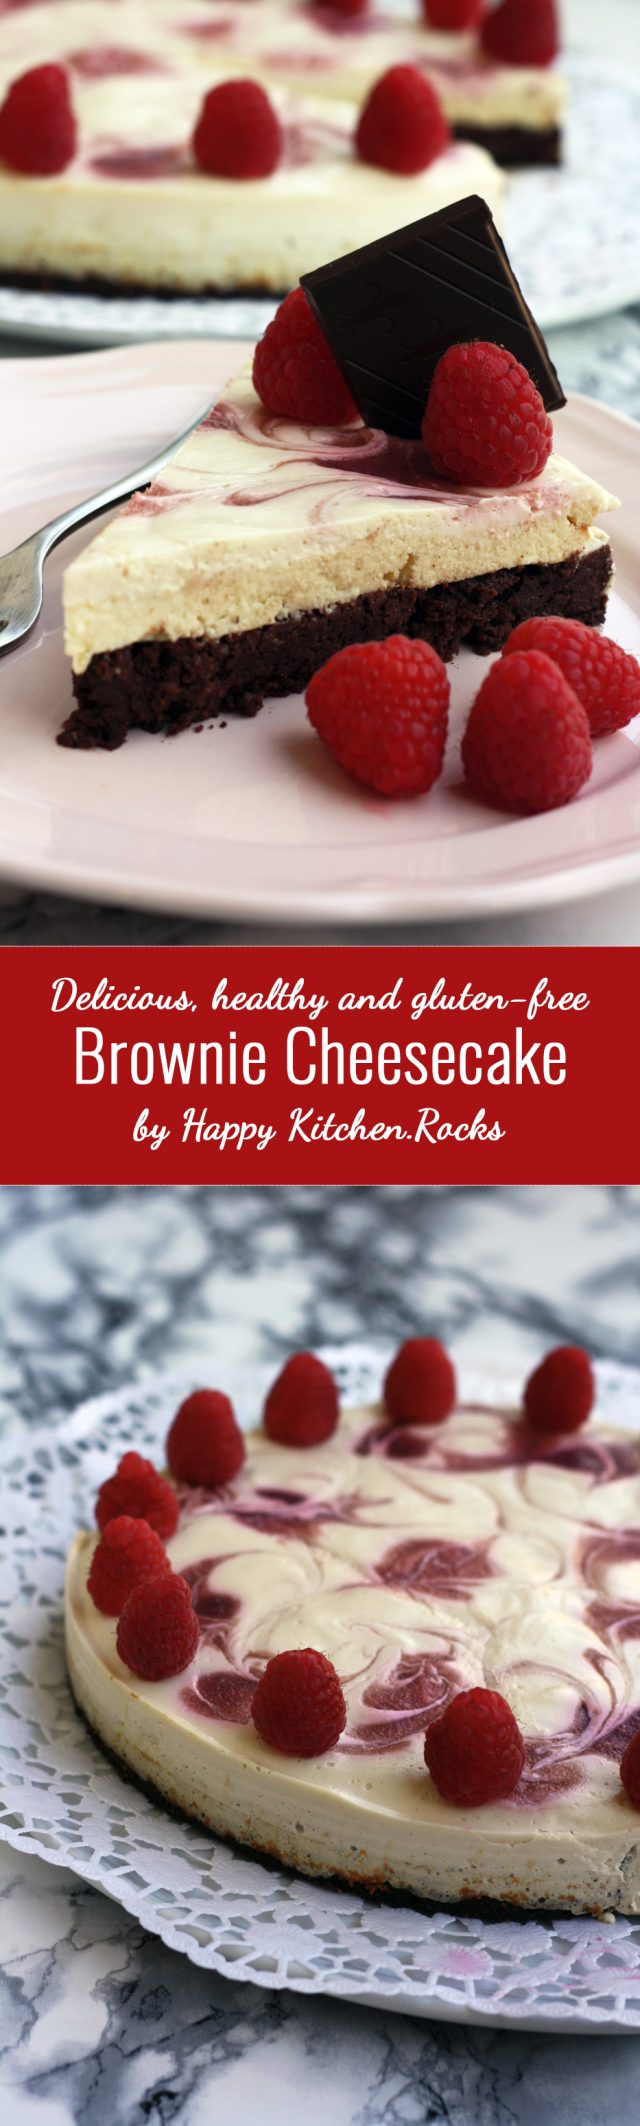 Fudgy brownie meets creamy cheesecake! Delicious, healthy and gluten-free brownie cheesecake with raspberry swirl. Easy 50-min recipe from start to finish!